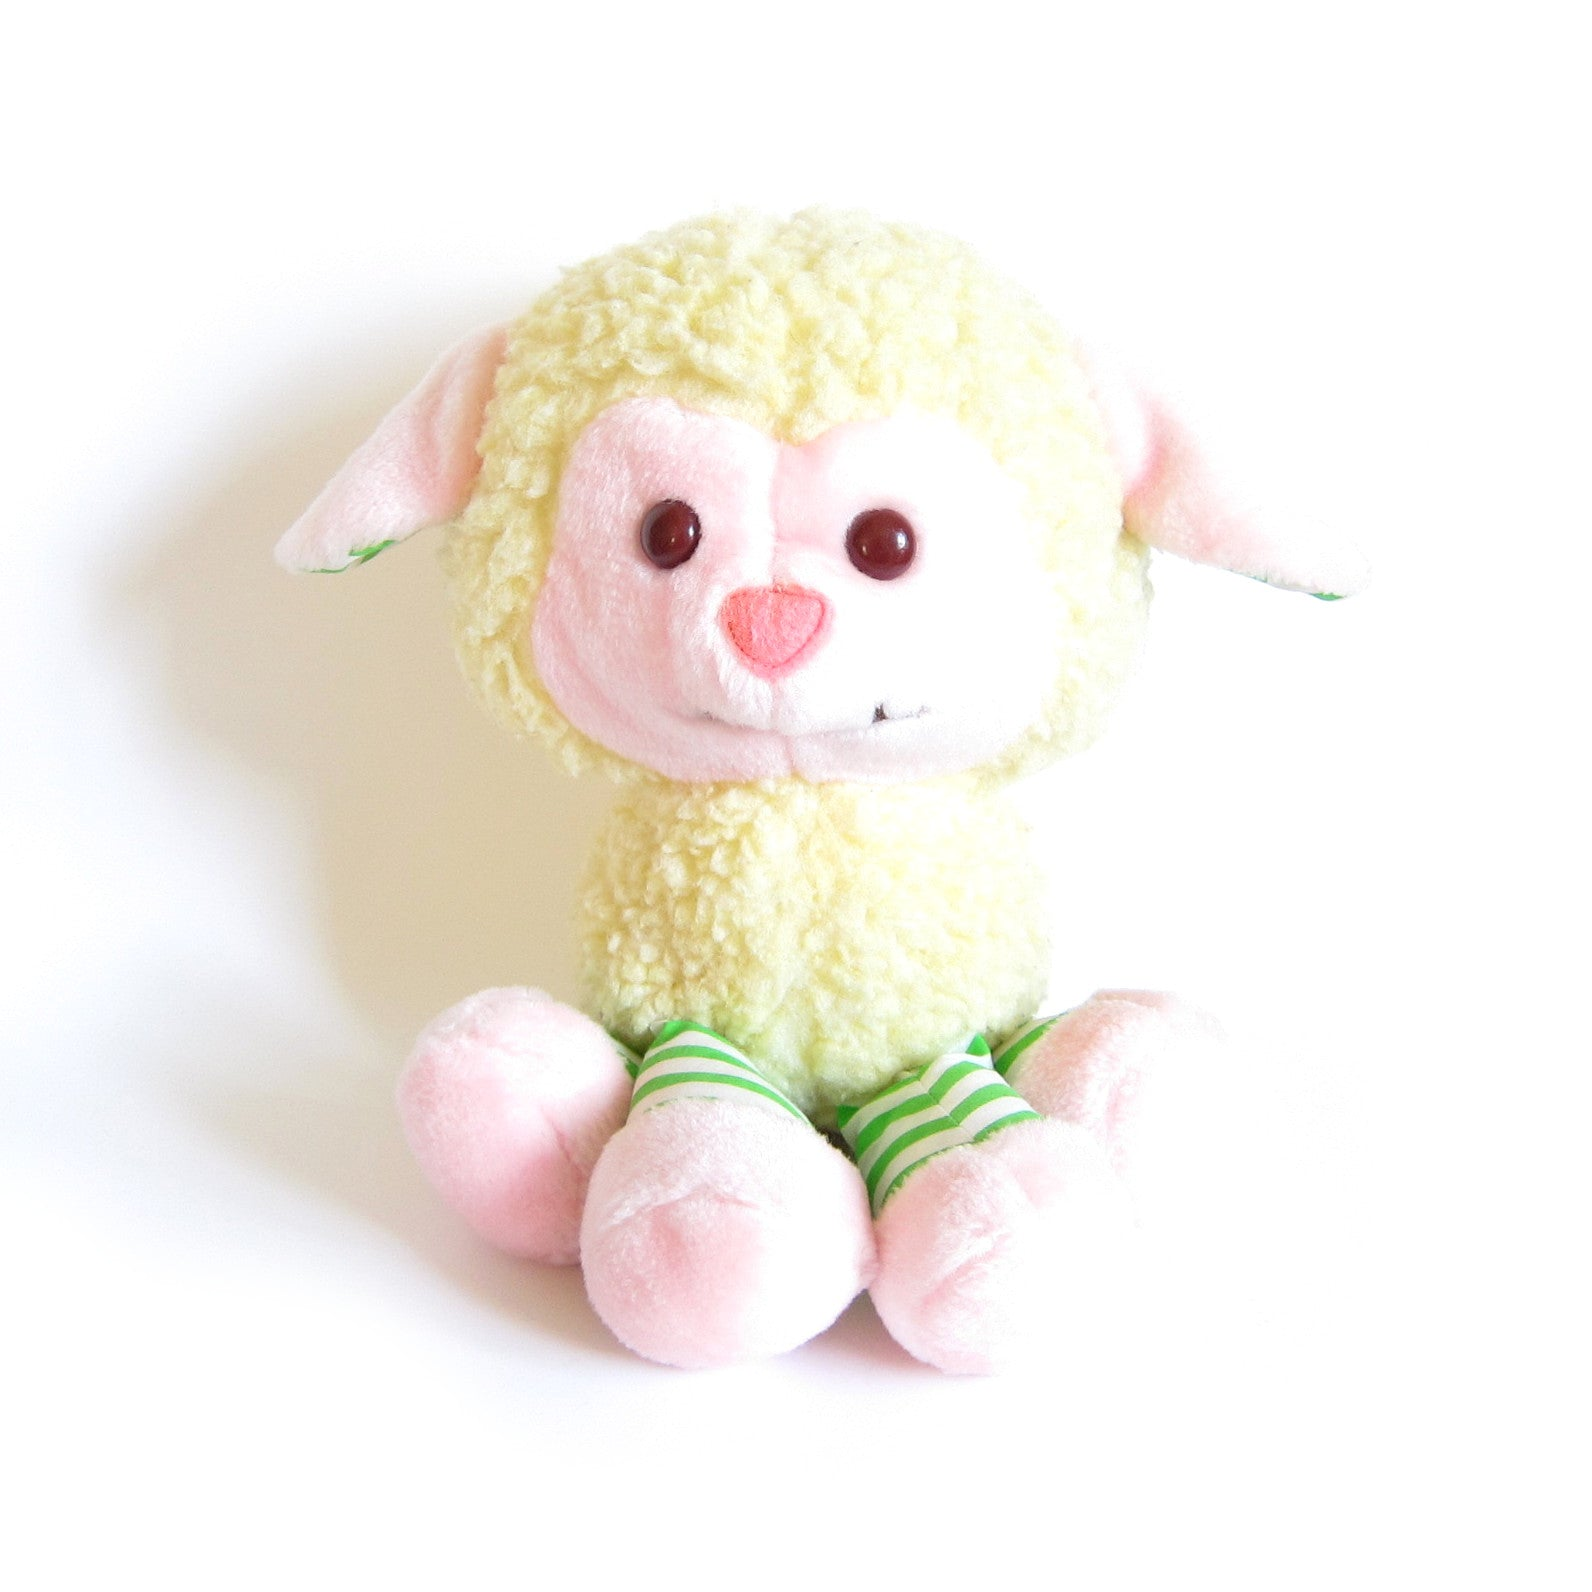 Melonie Belle plush stuffed animal toy